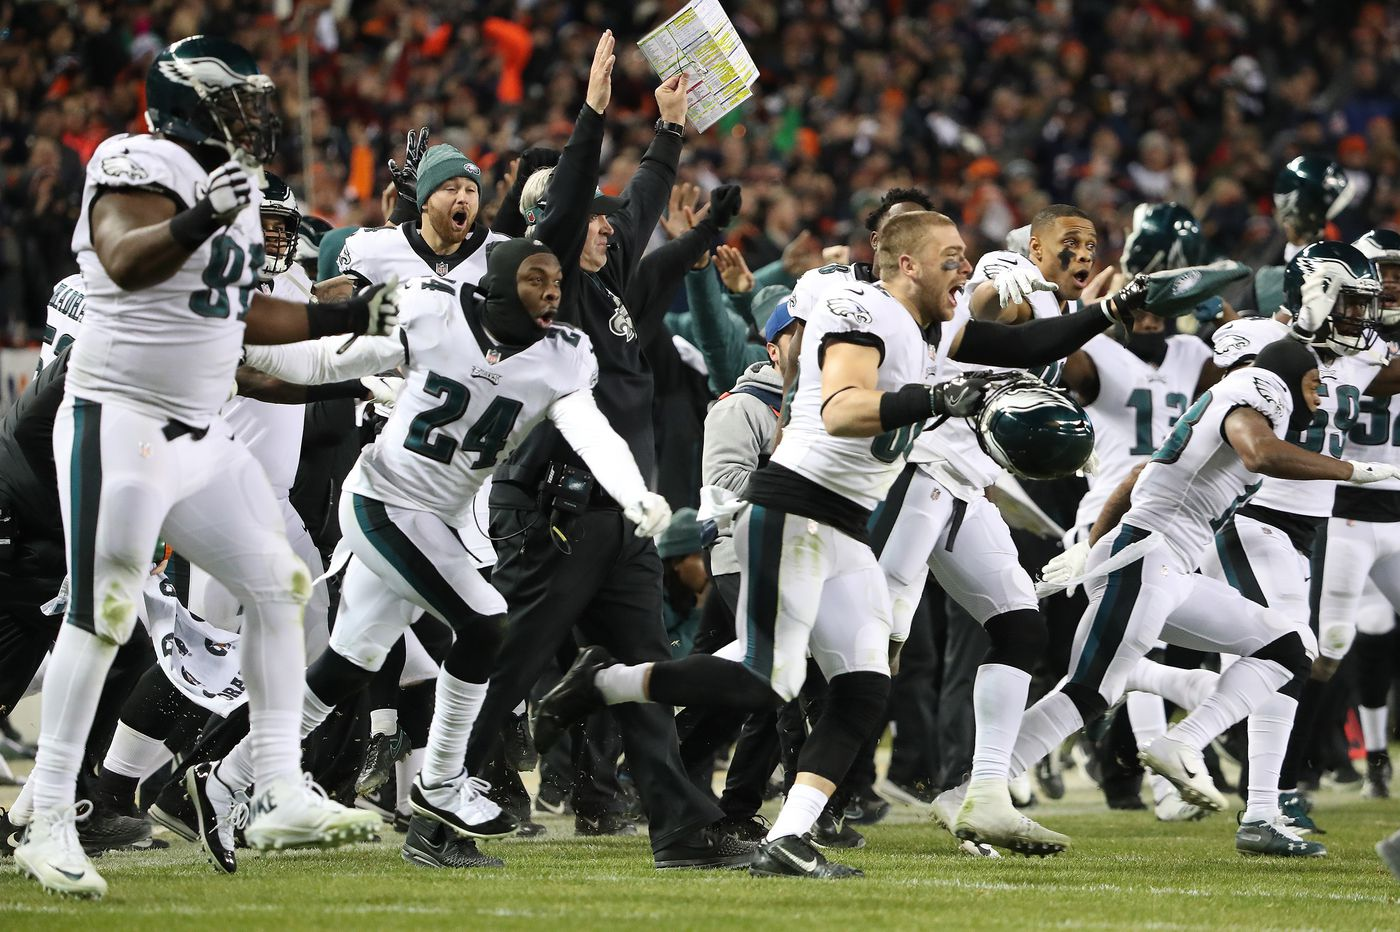 Eagles-Bears: What we learned from the thrilling win